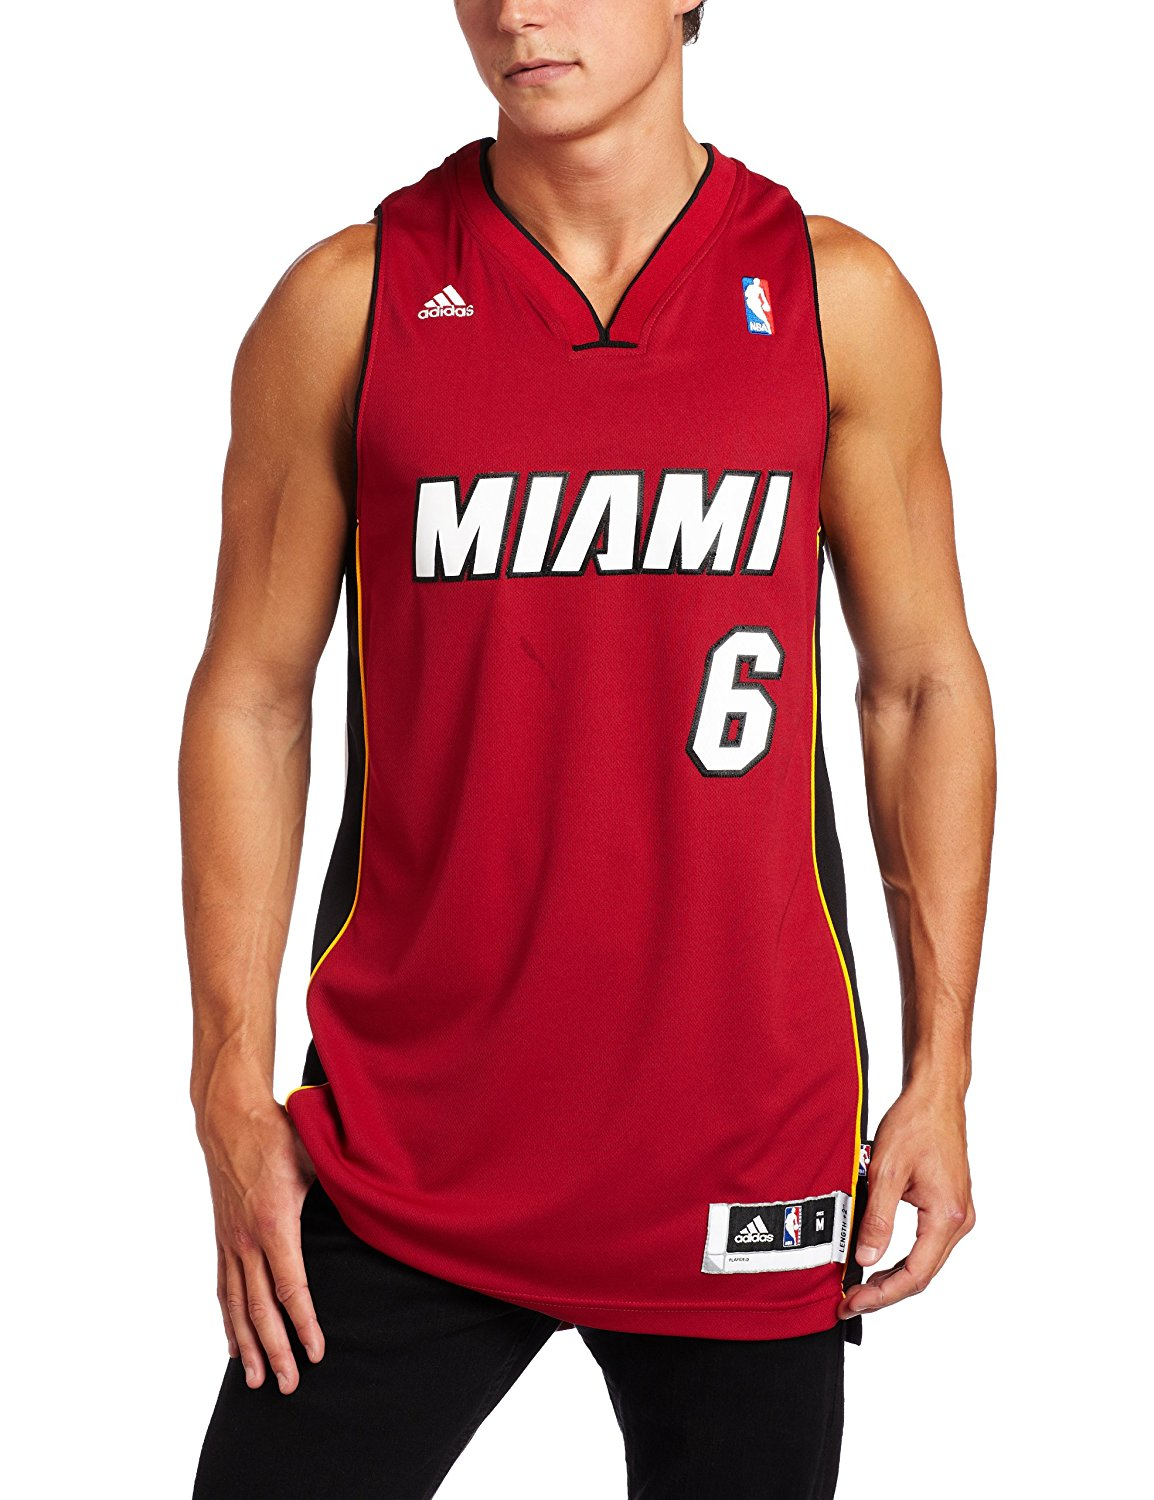 sale retailer 61ae6 92161 Buy NBA Miami Heat LeBron James Swingman Jersey, Maroon in ...